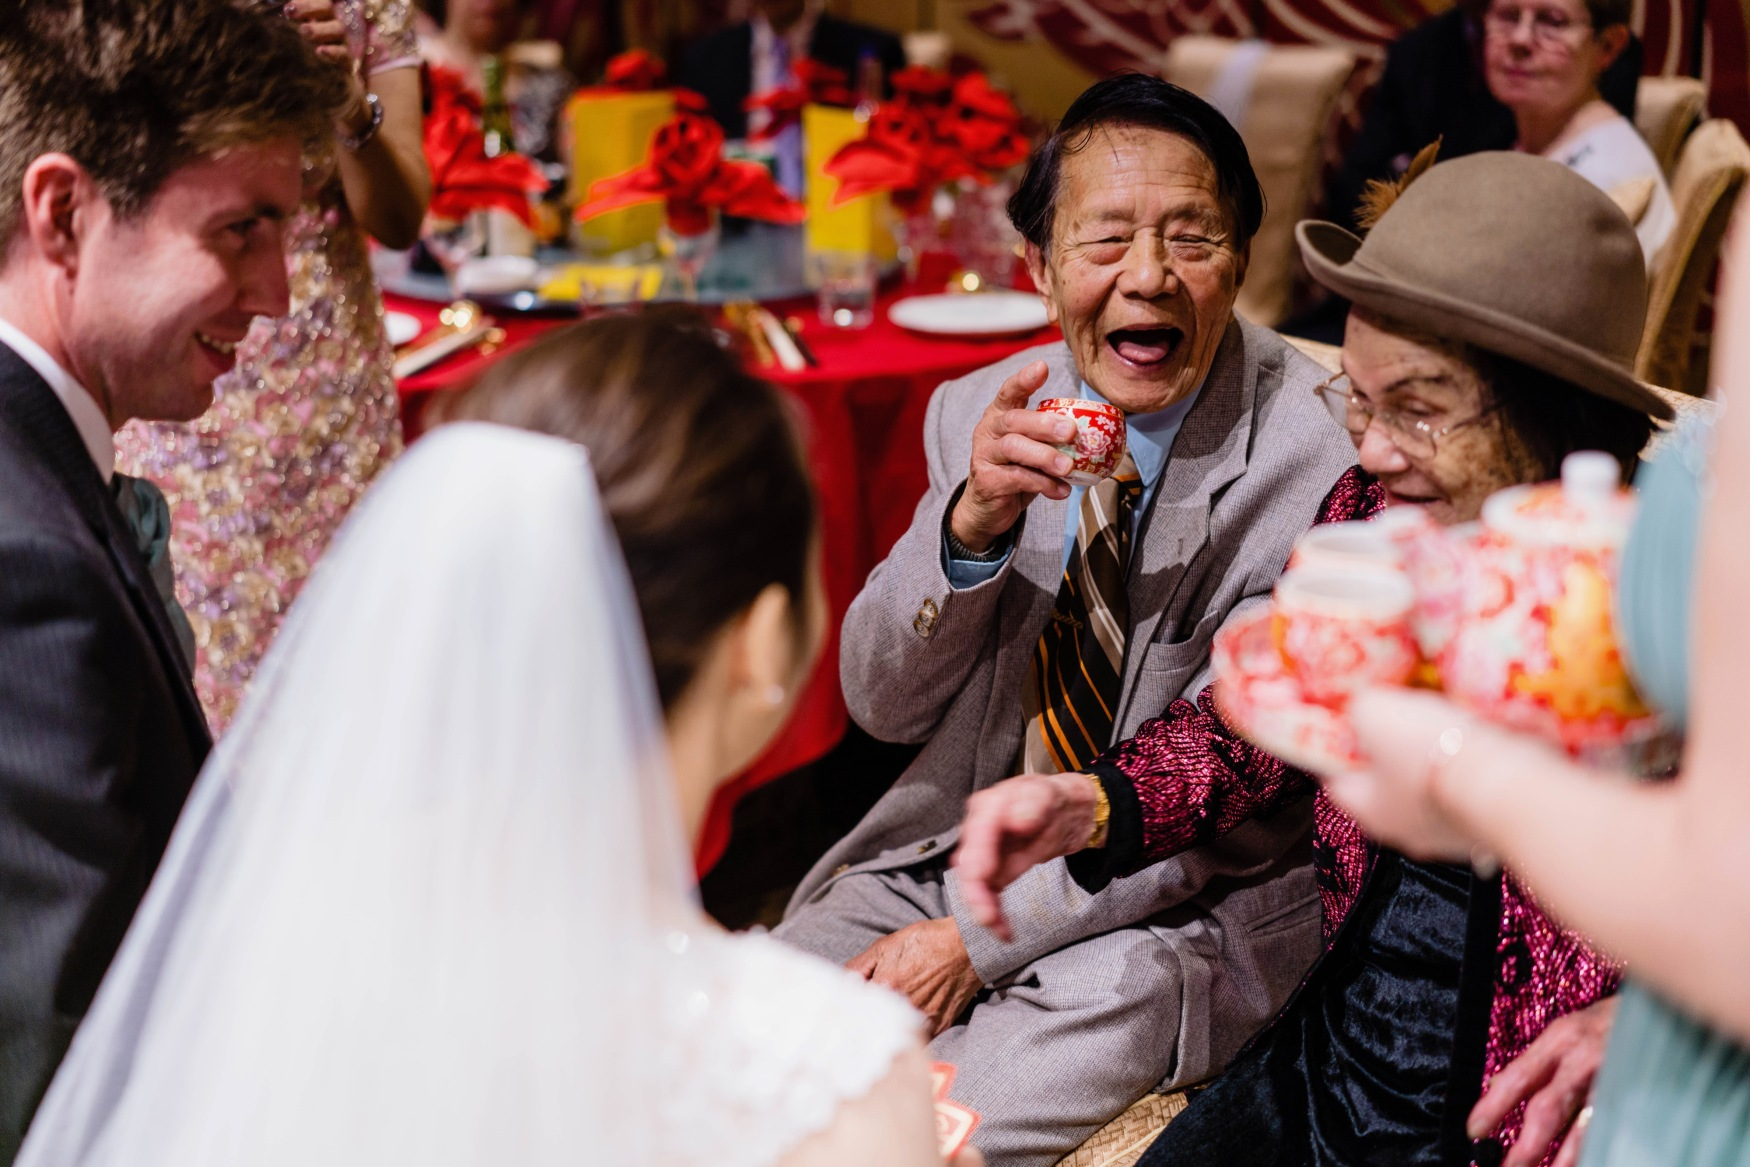 Granddad receiving tea in the tea ceremony during my wedding in 2018